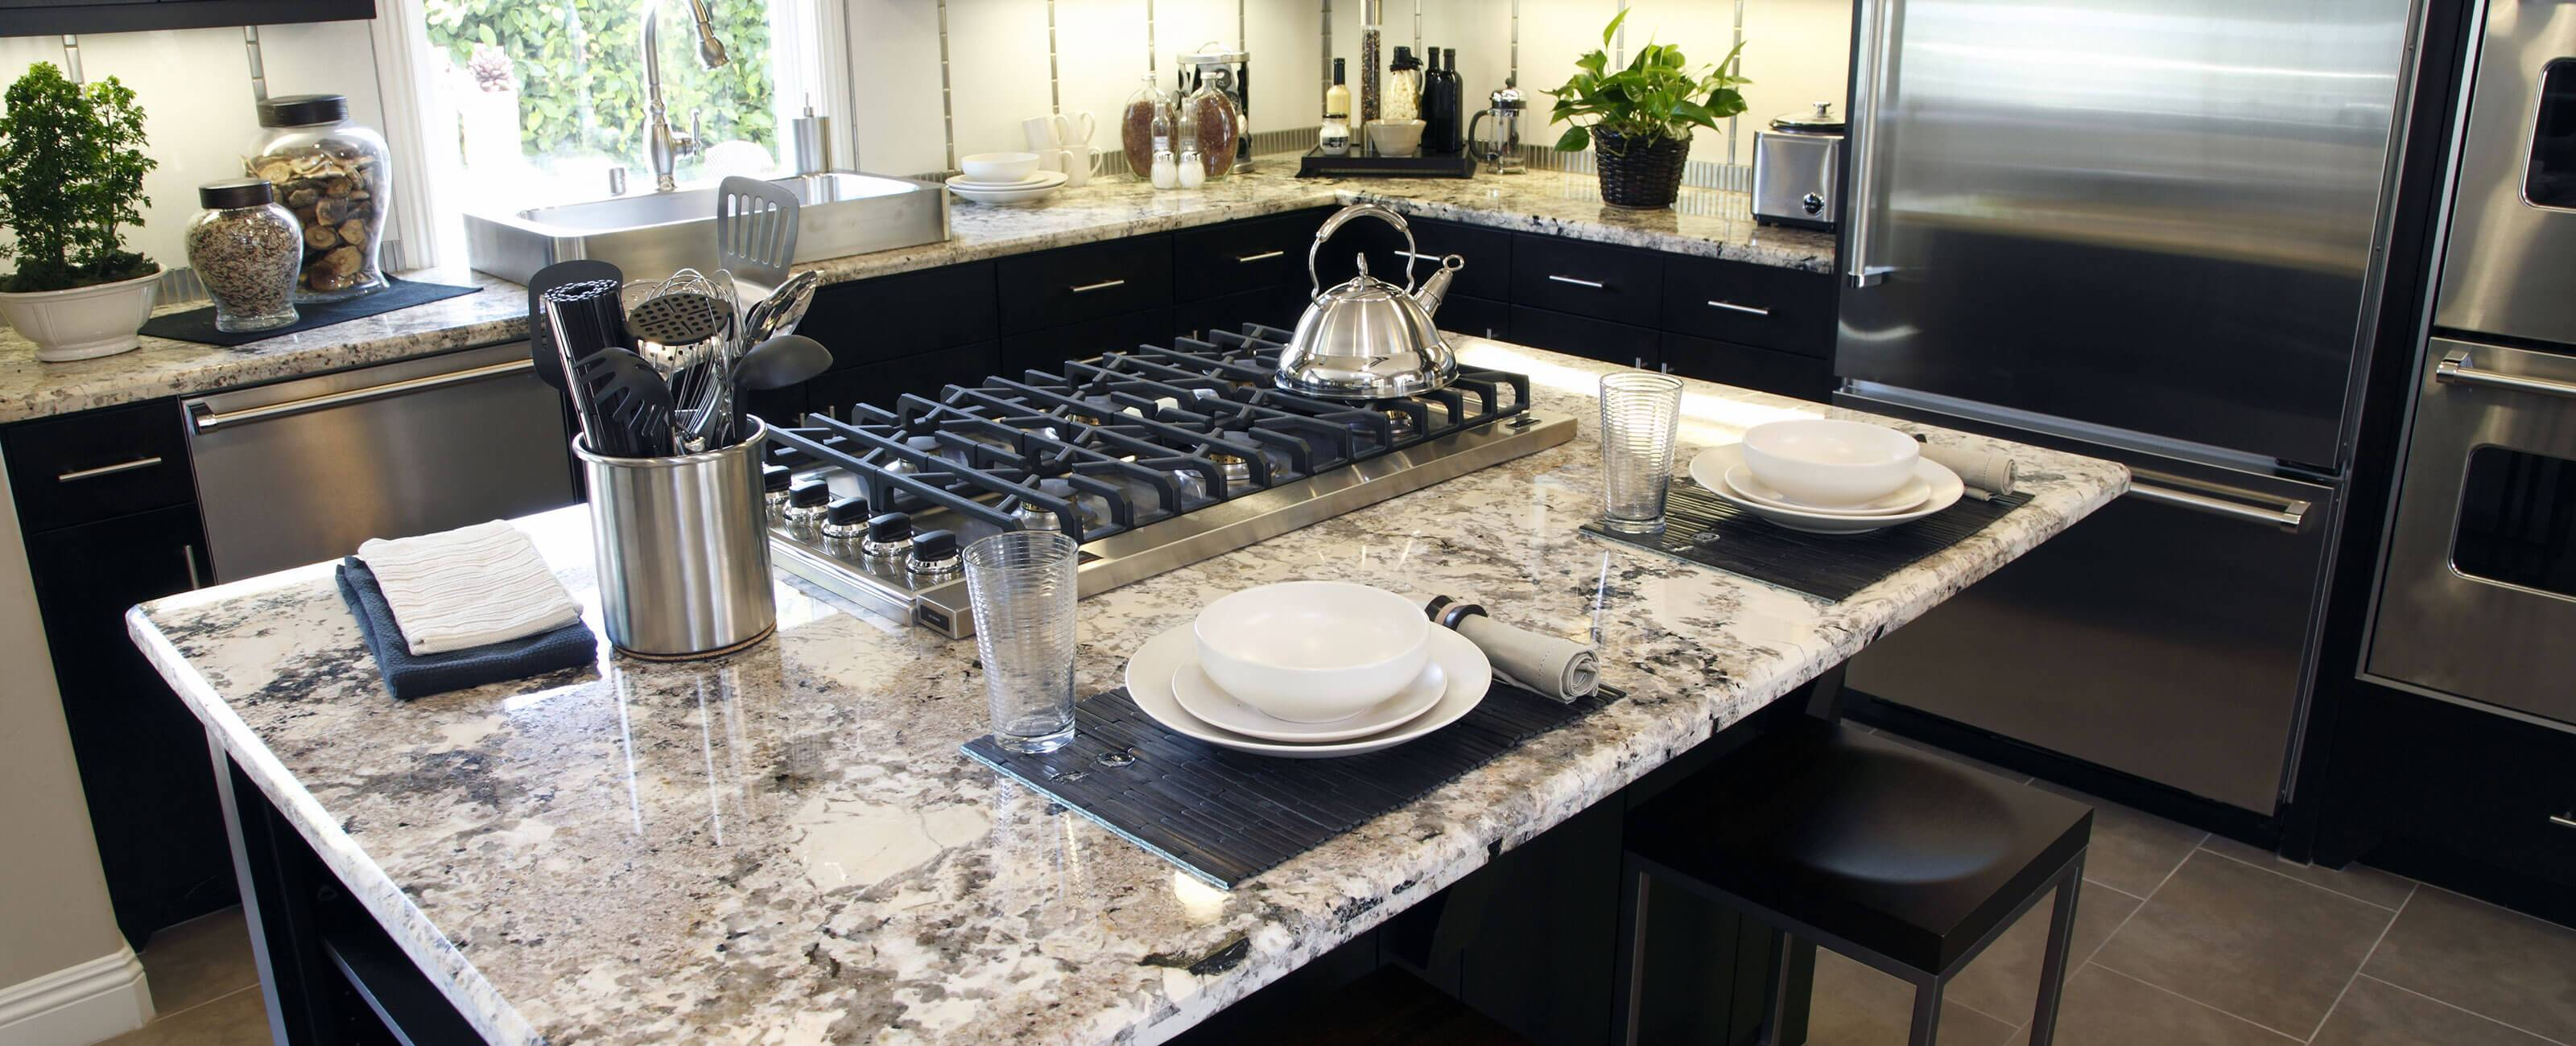 Michigan Granite Countertops - Great Lakes Granite & Marble on Dark Granite Countertops With Dark Cabinets  id=87754